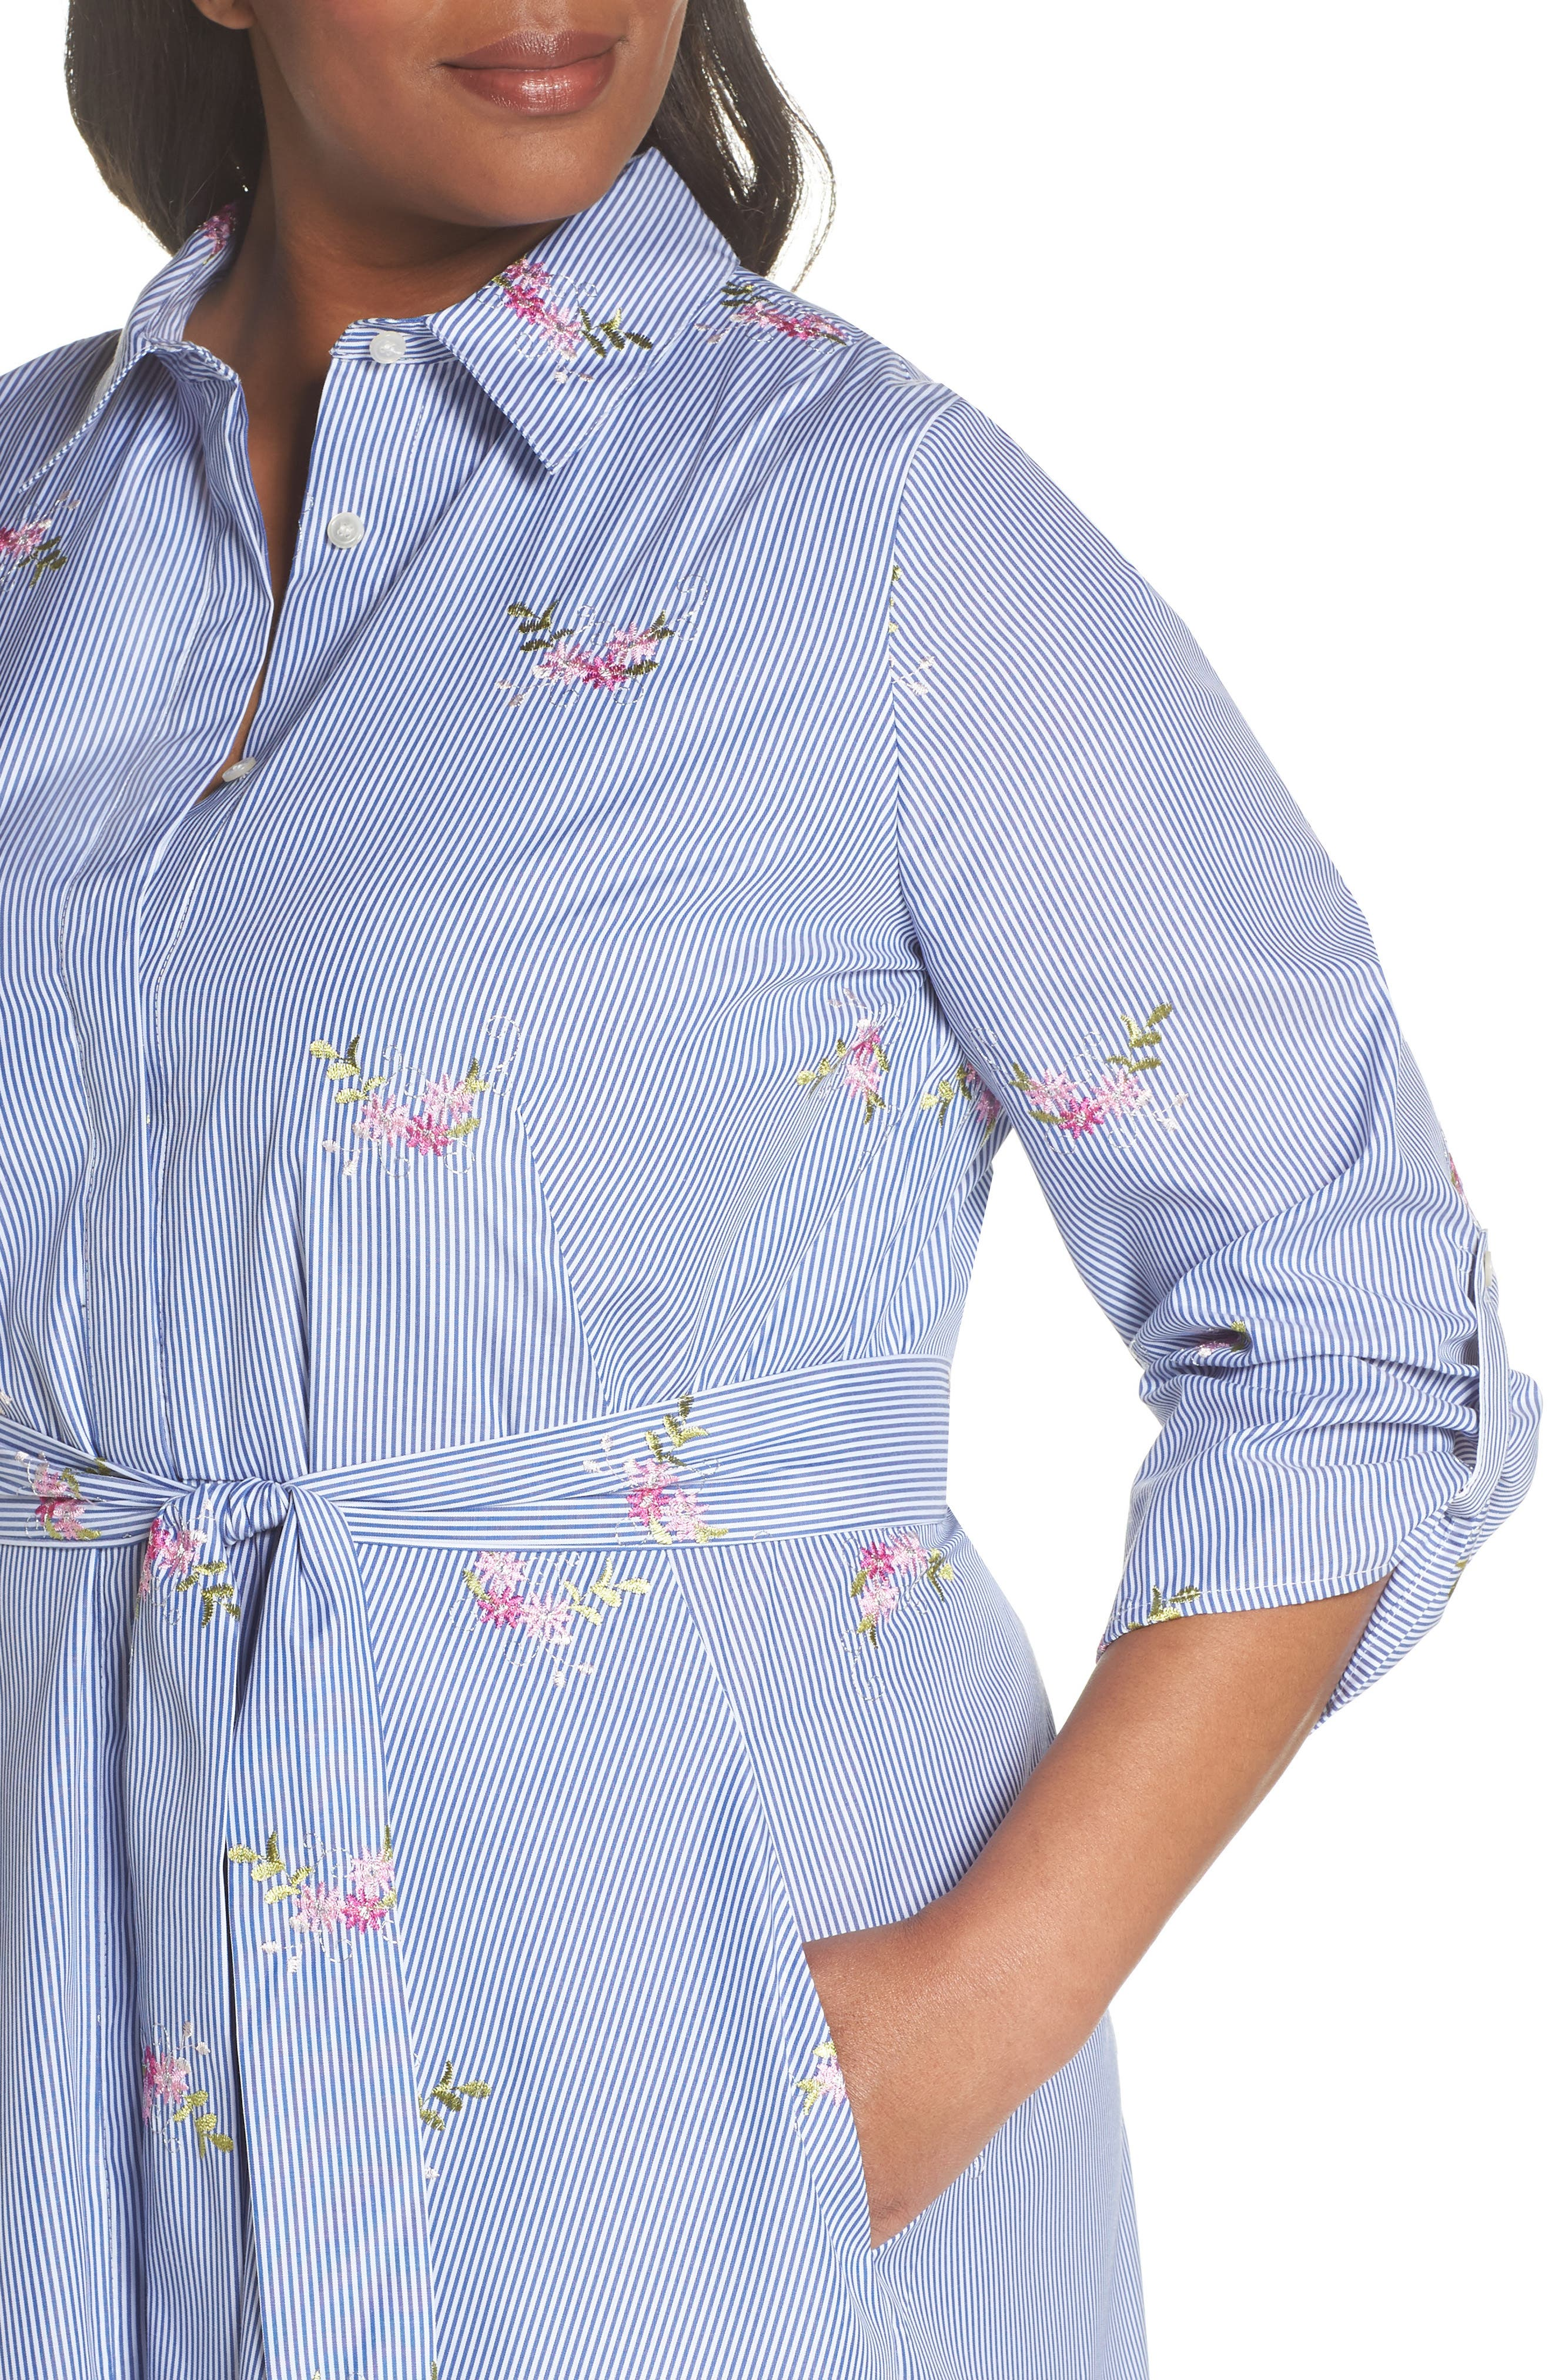 Embroidered Stripe Shirtdress,                             Alternate thumbnail 4, color,                             NAVY/ WHITE/ PINK